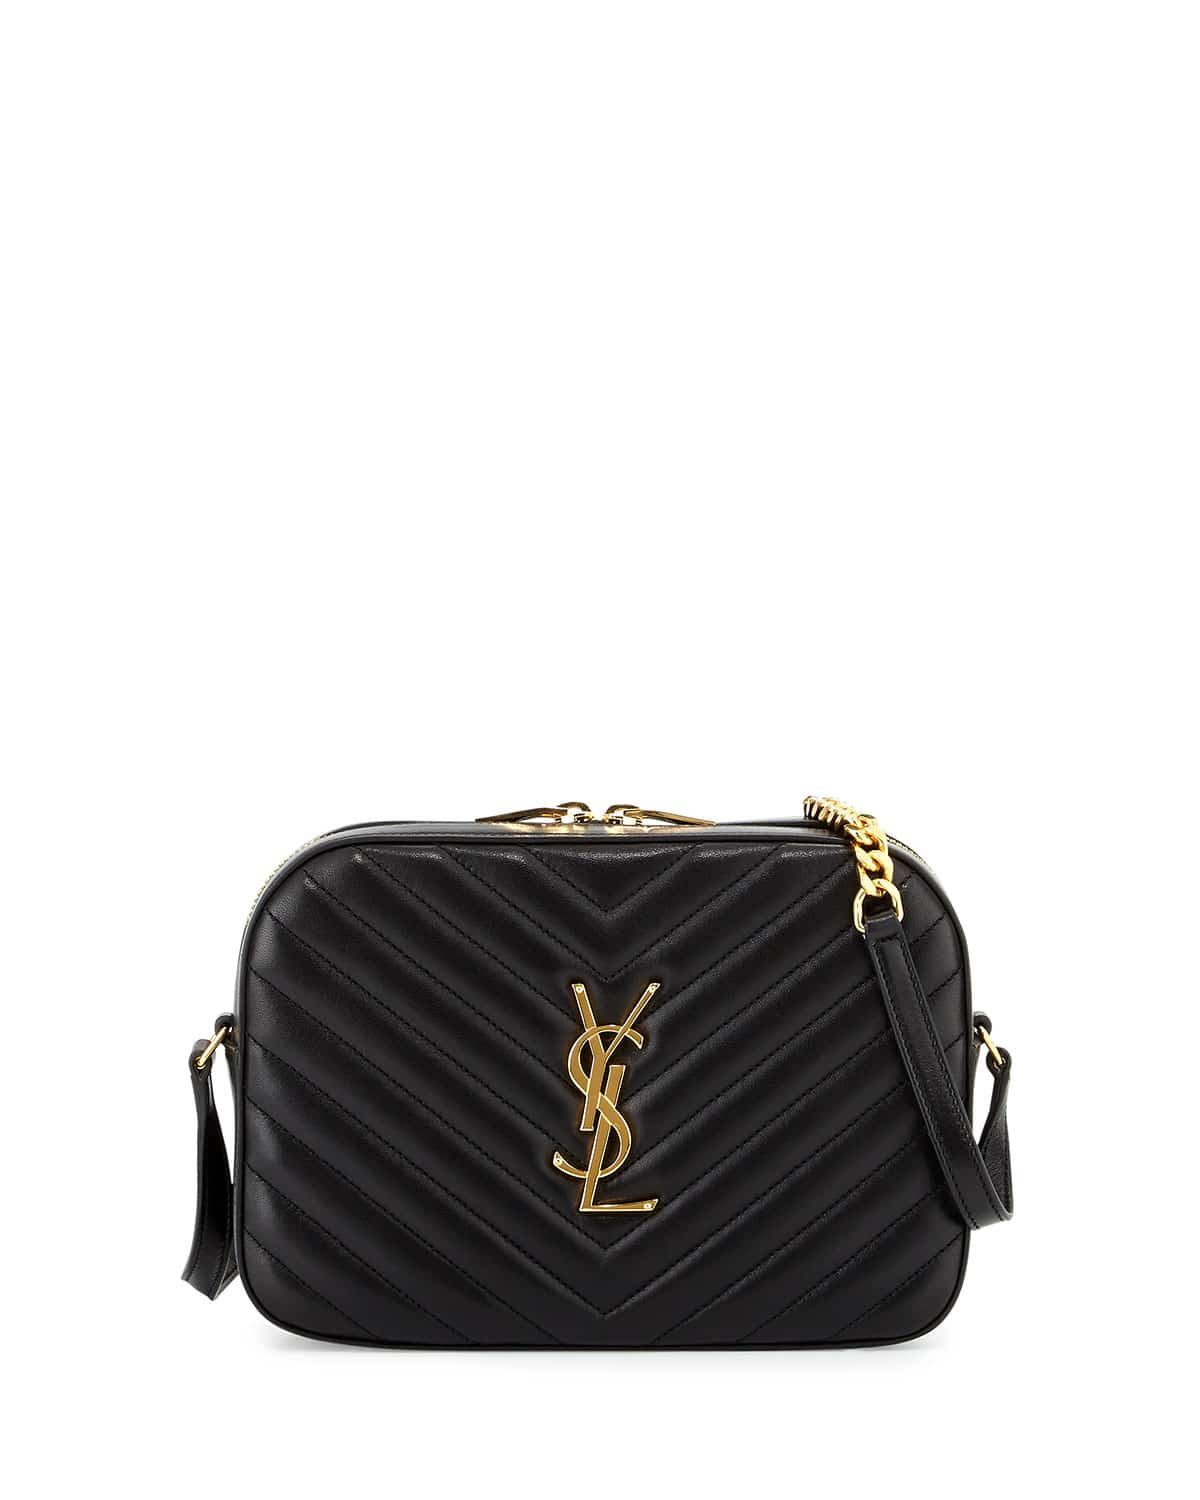 saint laurent classic monogram camera bag reference guide spotted fashion. Black Bedroom Furniture Sets. Home Design Ideas